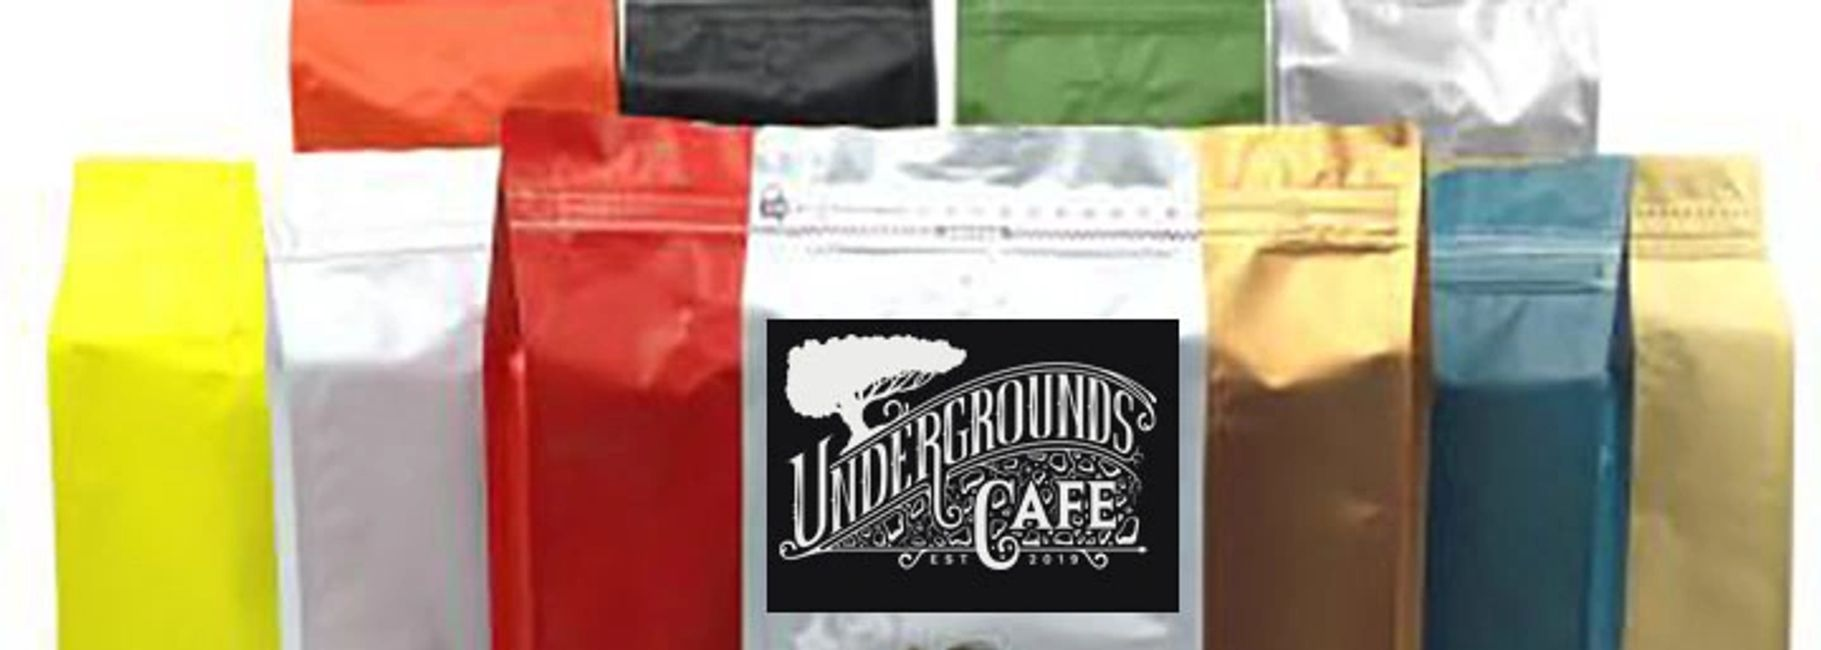 Coffee fundraising by Undergrounds Cafe & Coffee Houses.